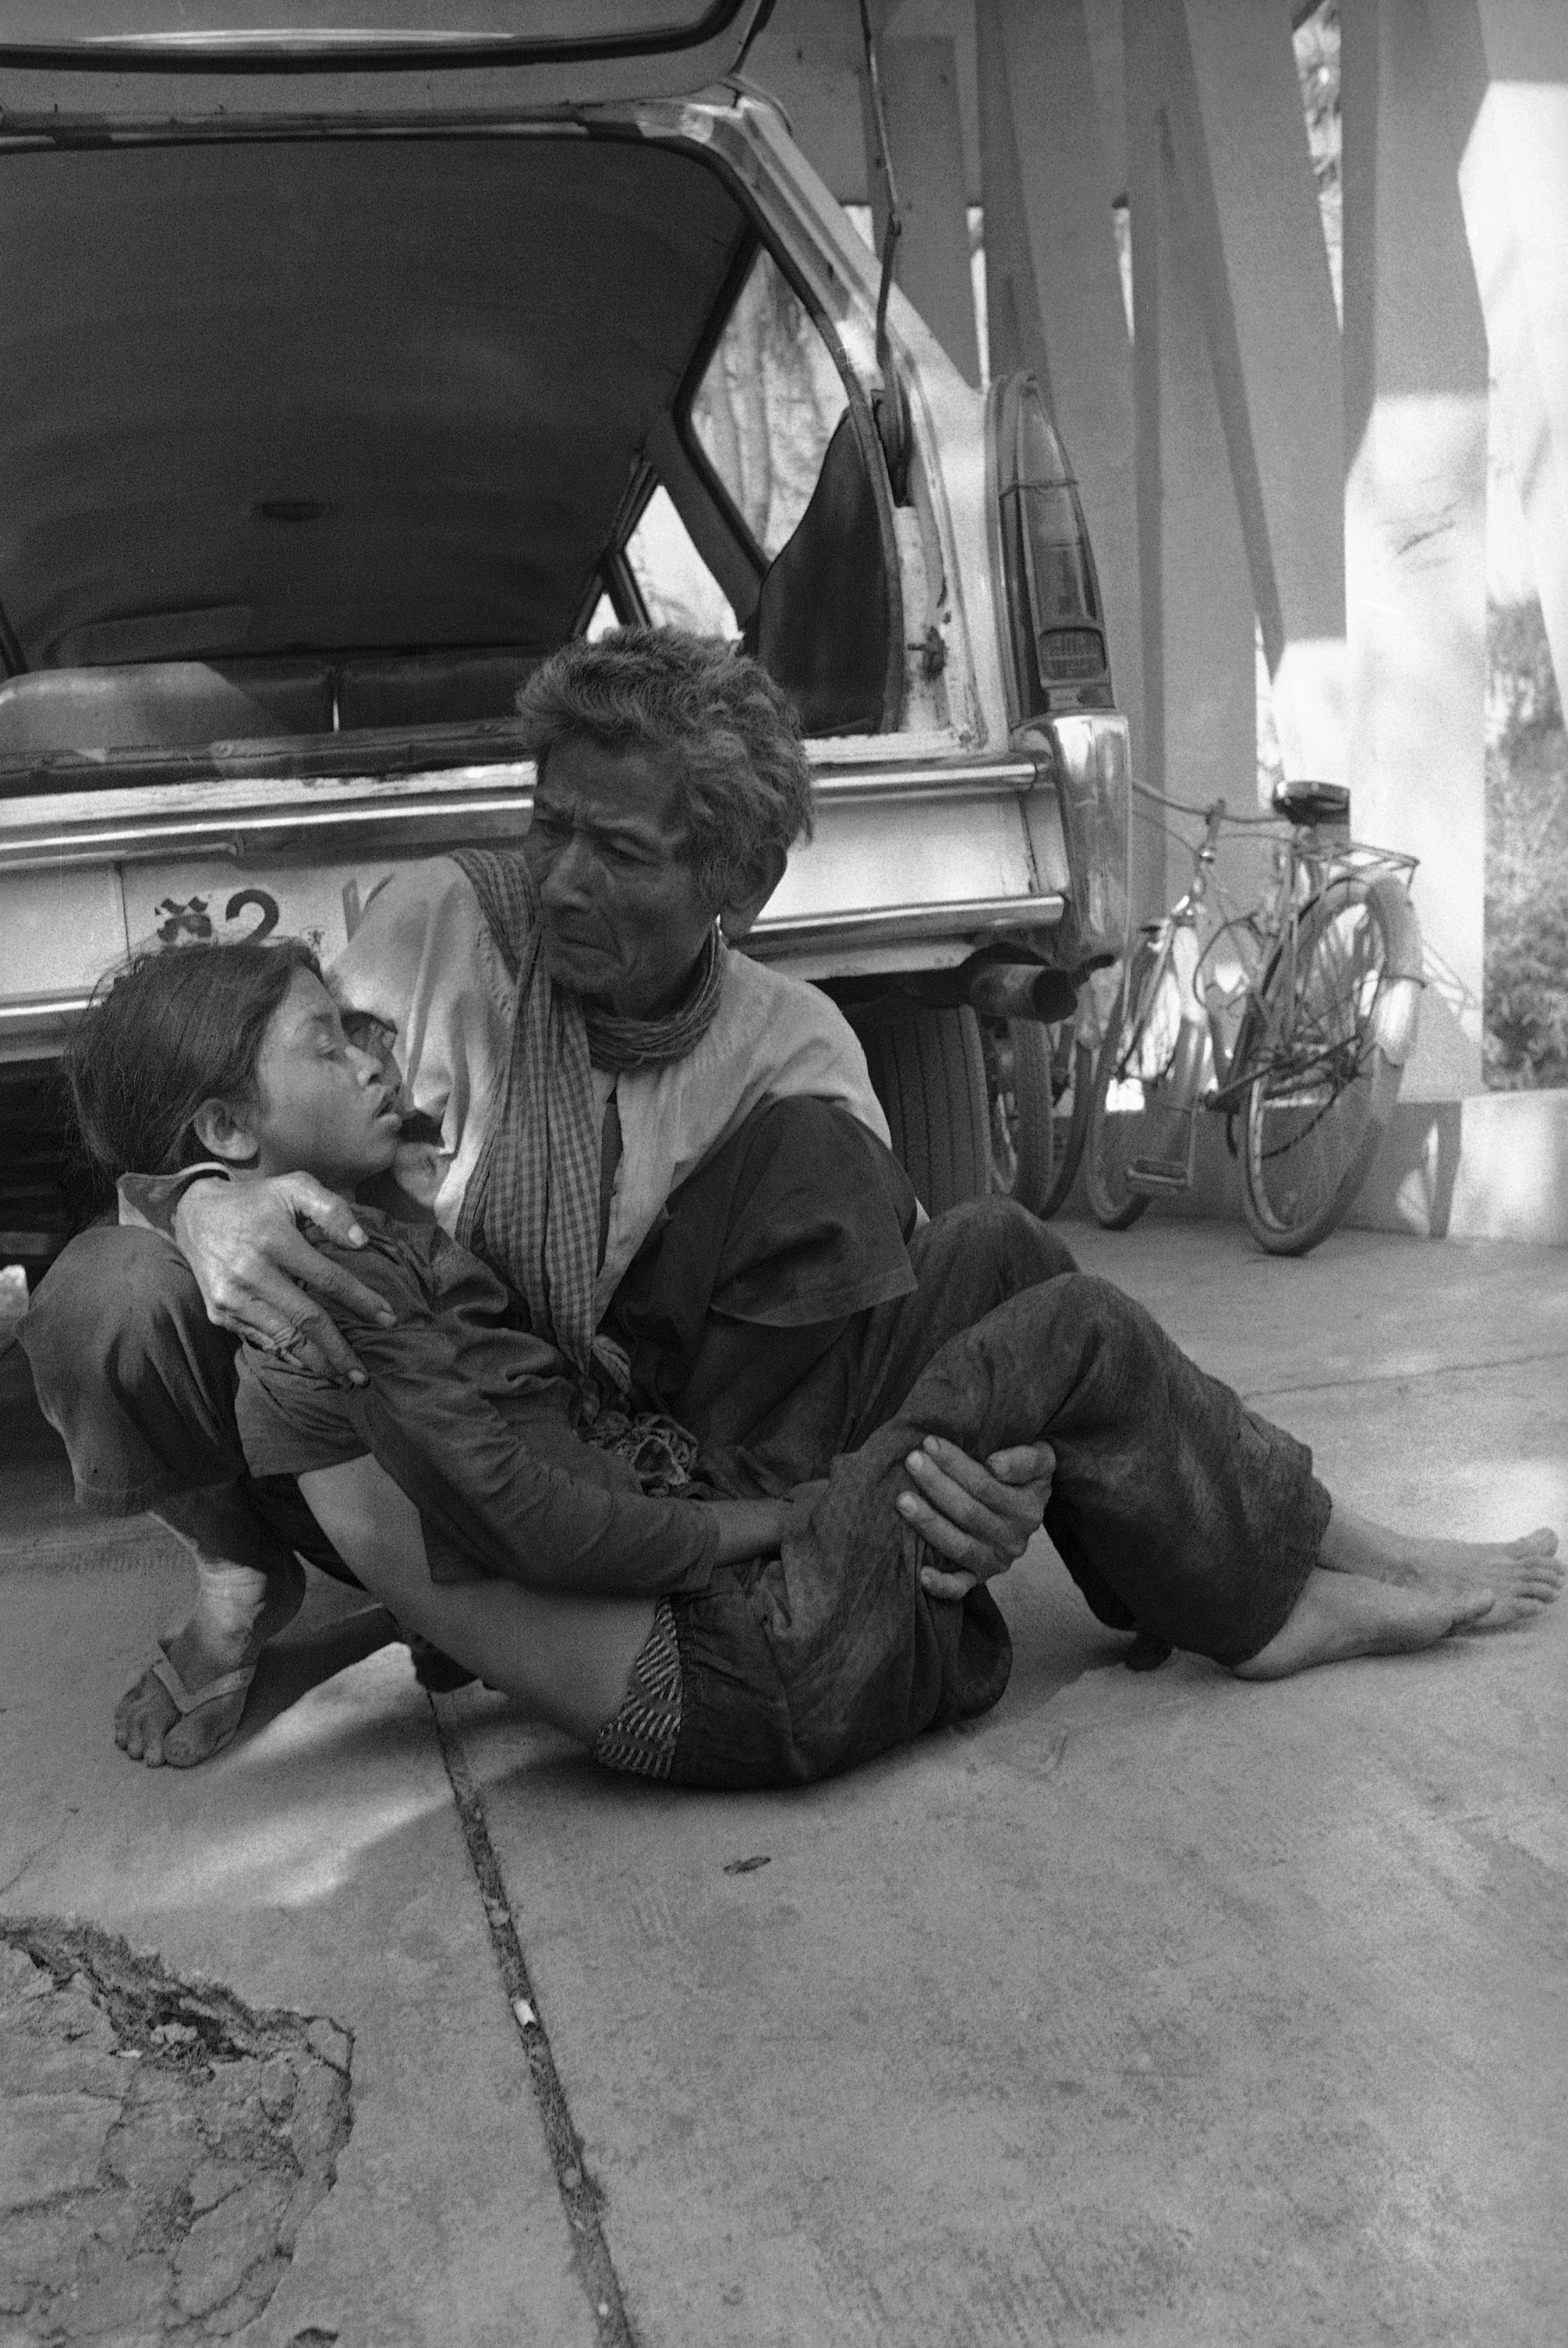 A Cambodian cries as he holds his dead daughter killed when Khmer Rouge insurgents sheiled Prek Phnau, eight miles North of Phnom Penh in Cambodia an. 10, 1974. (AP Photo/Chor Yuthy)